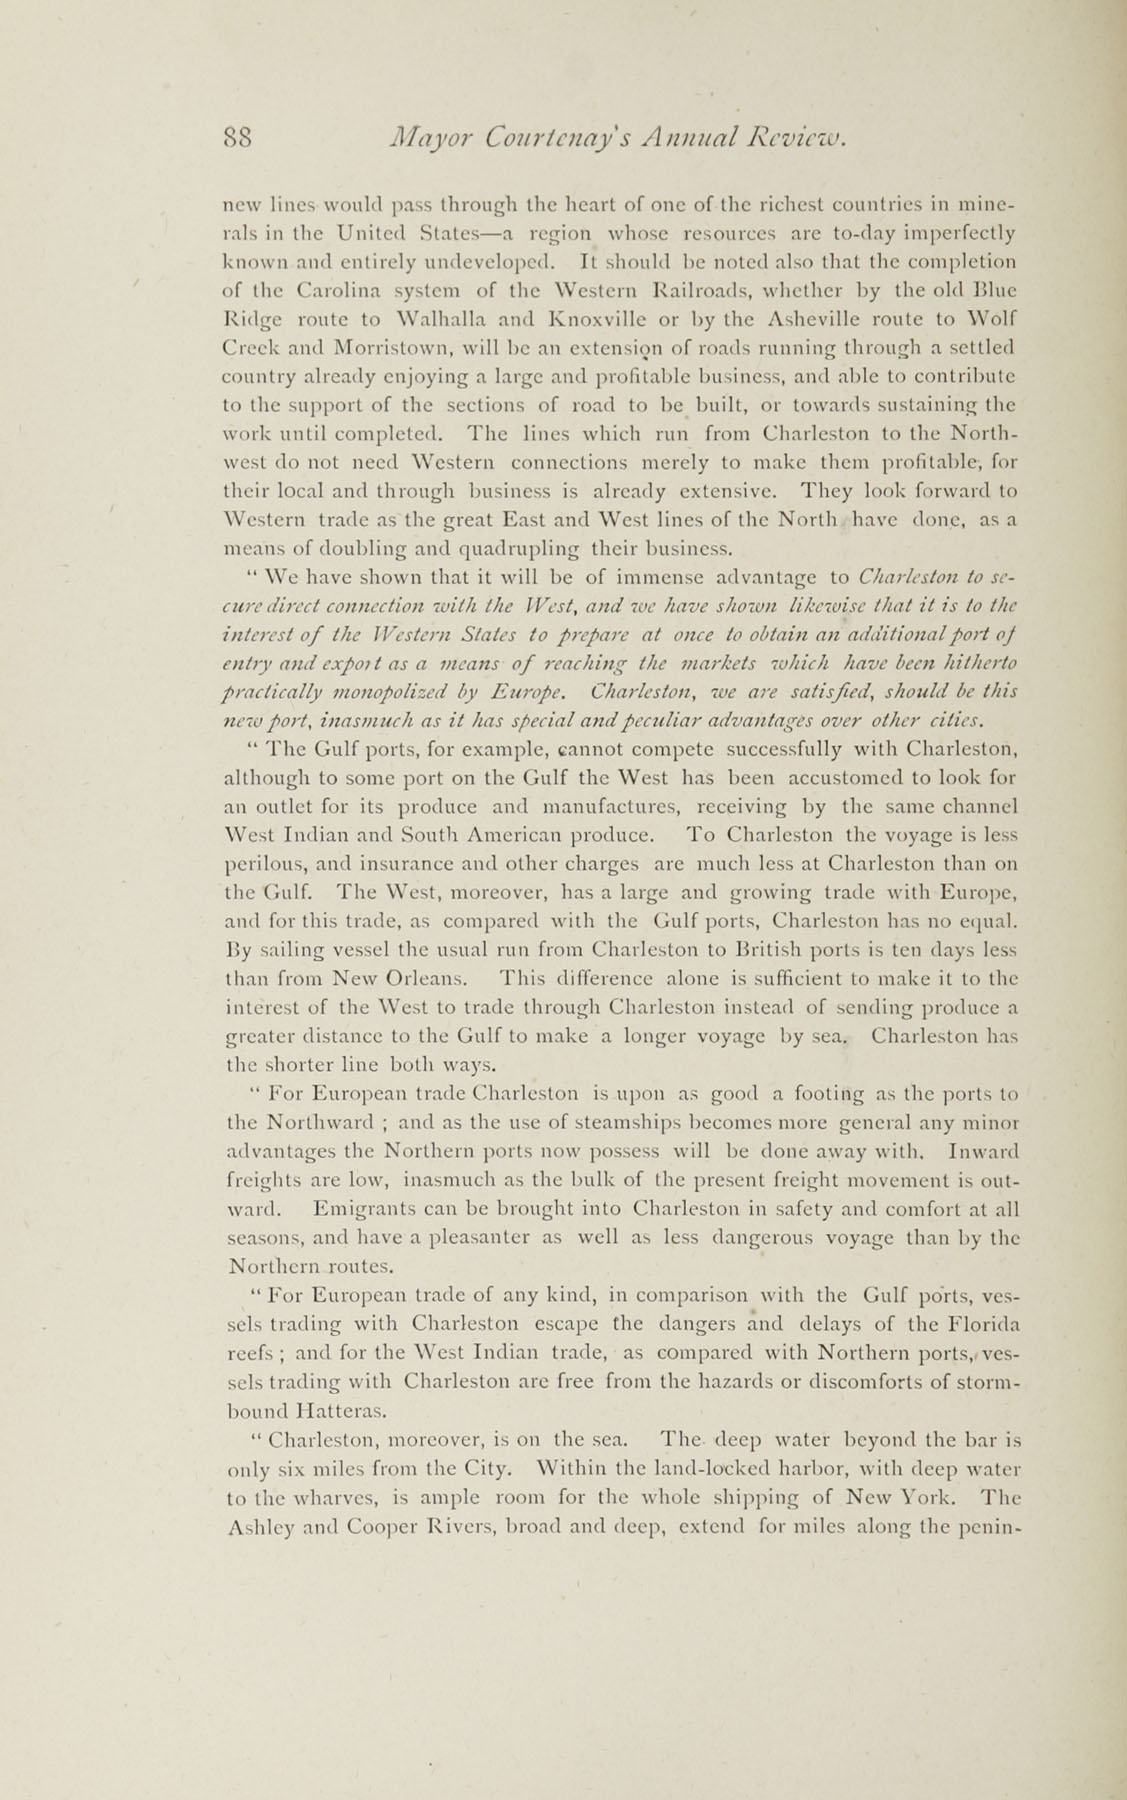 Charleston Year book, 1880, page 88